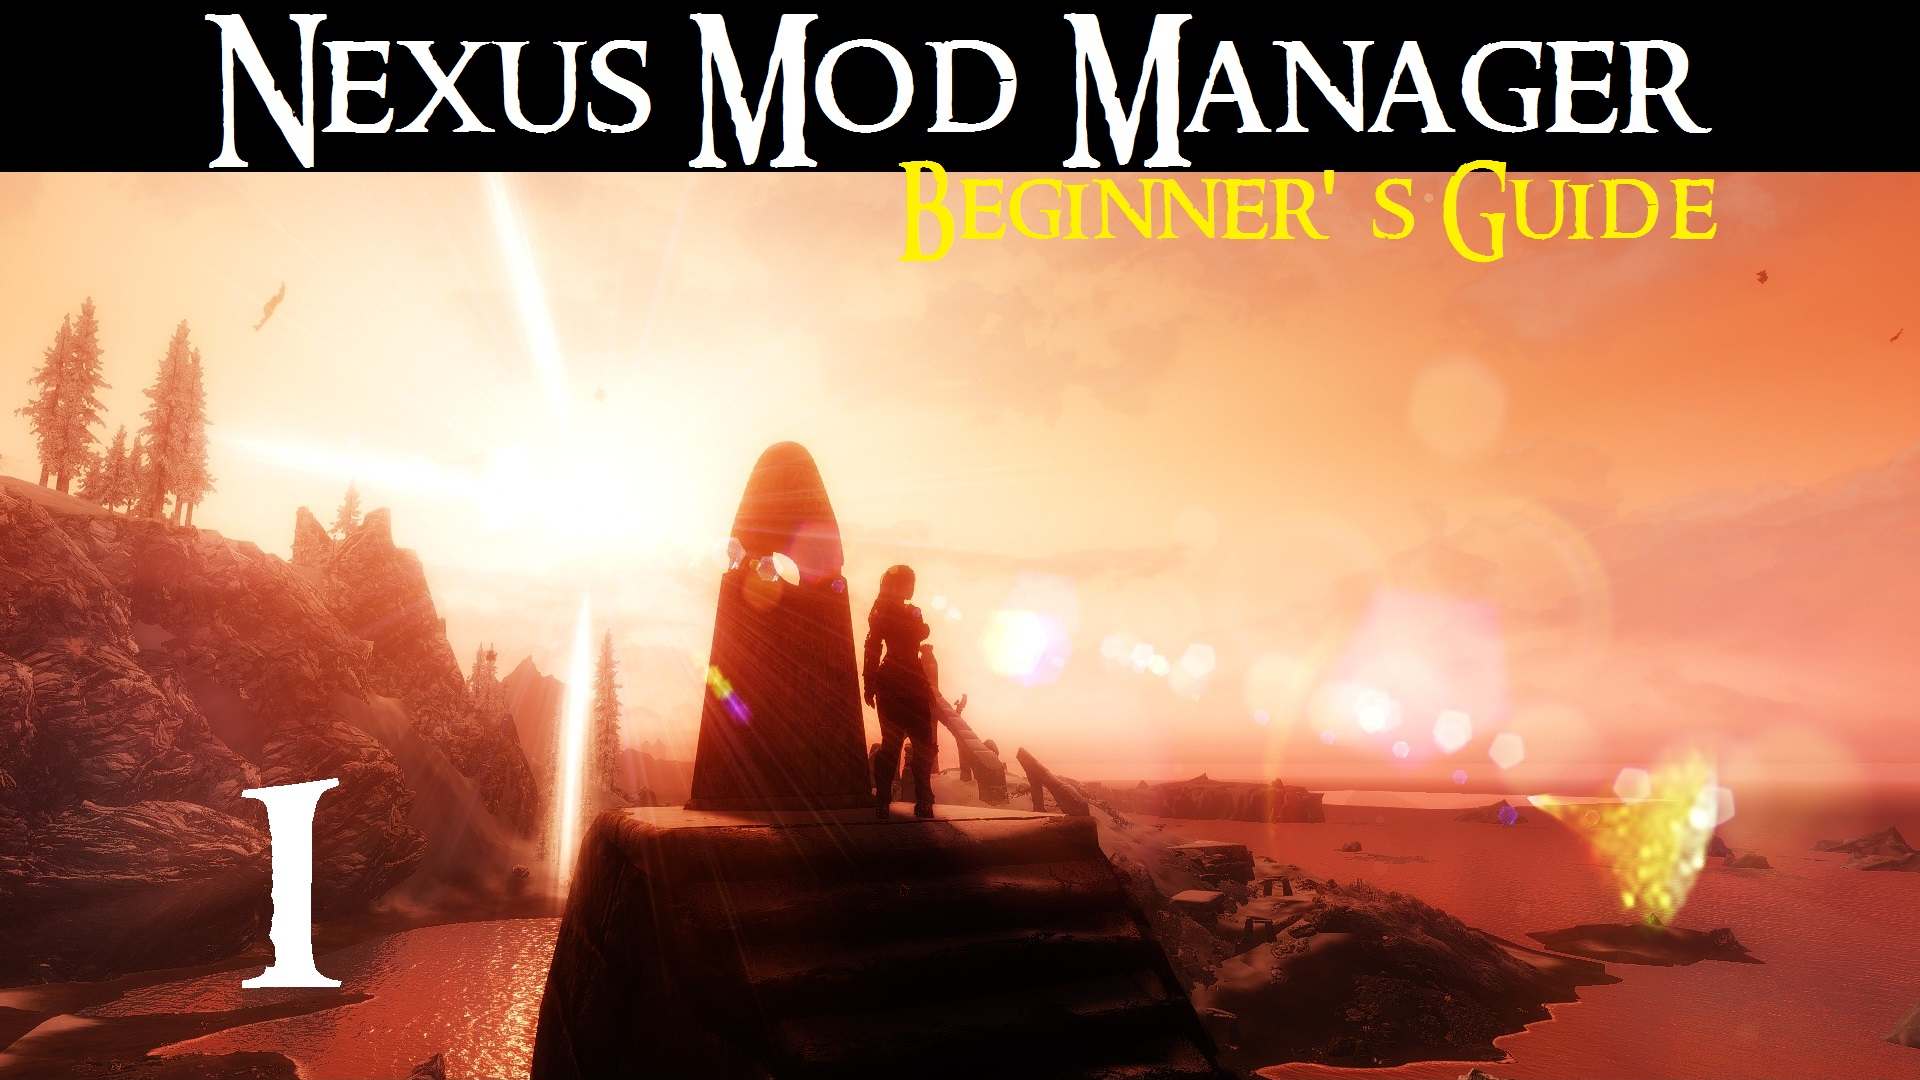 Gophers Vids » Nexus Mod Manager and Load Order